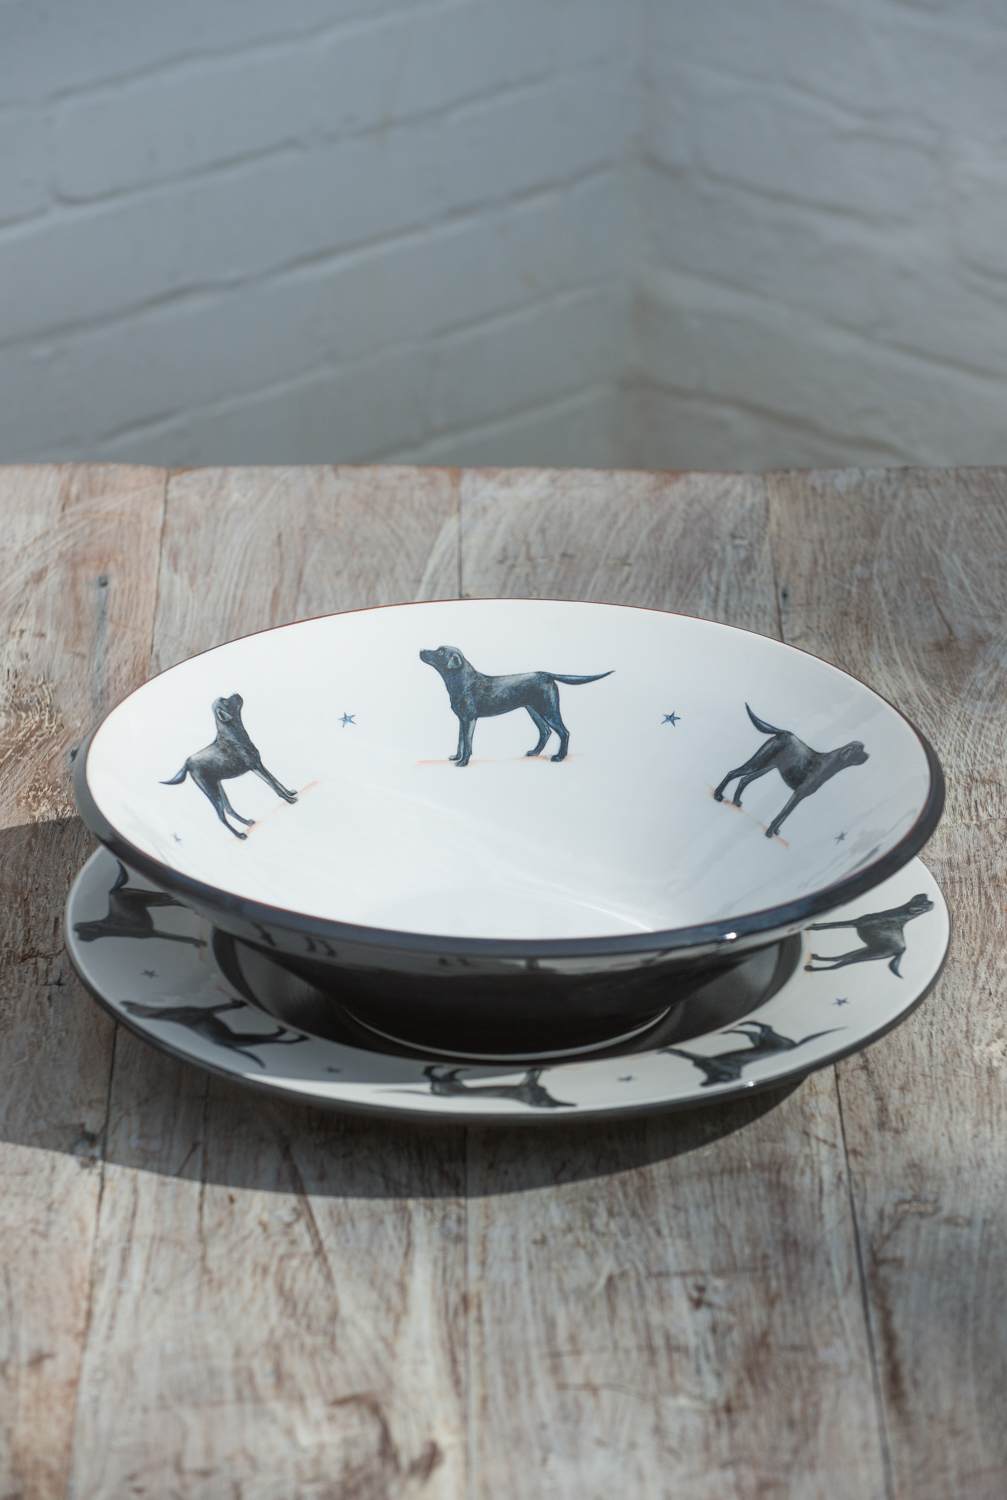 Black Labrador bowl and plate. From £95.